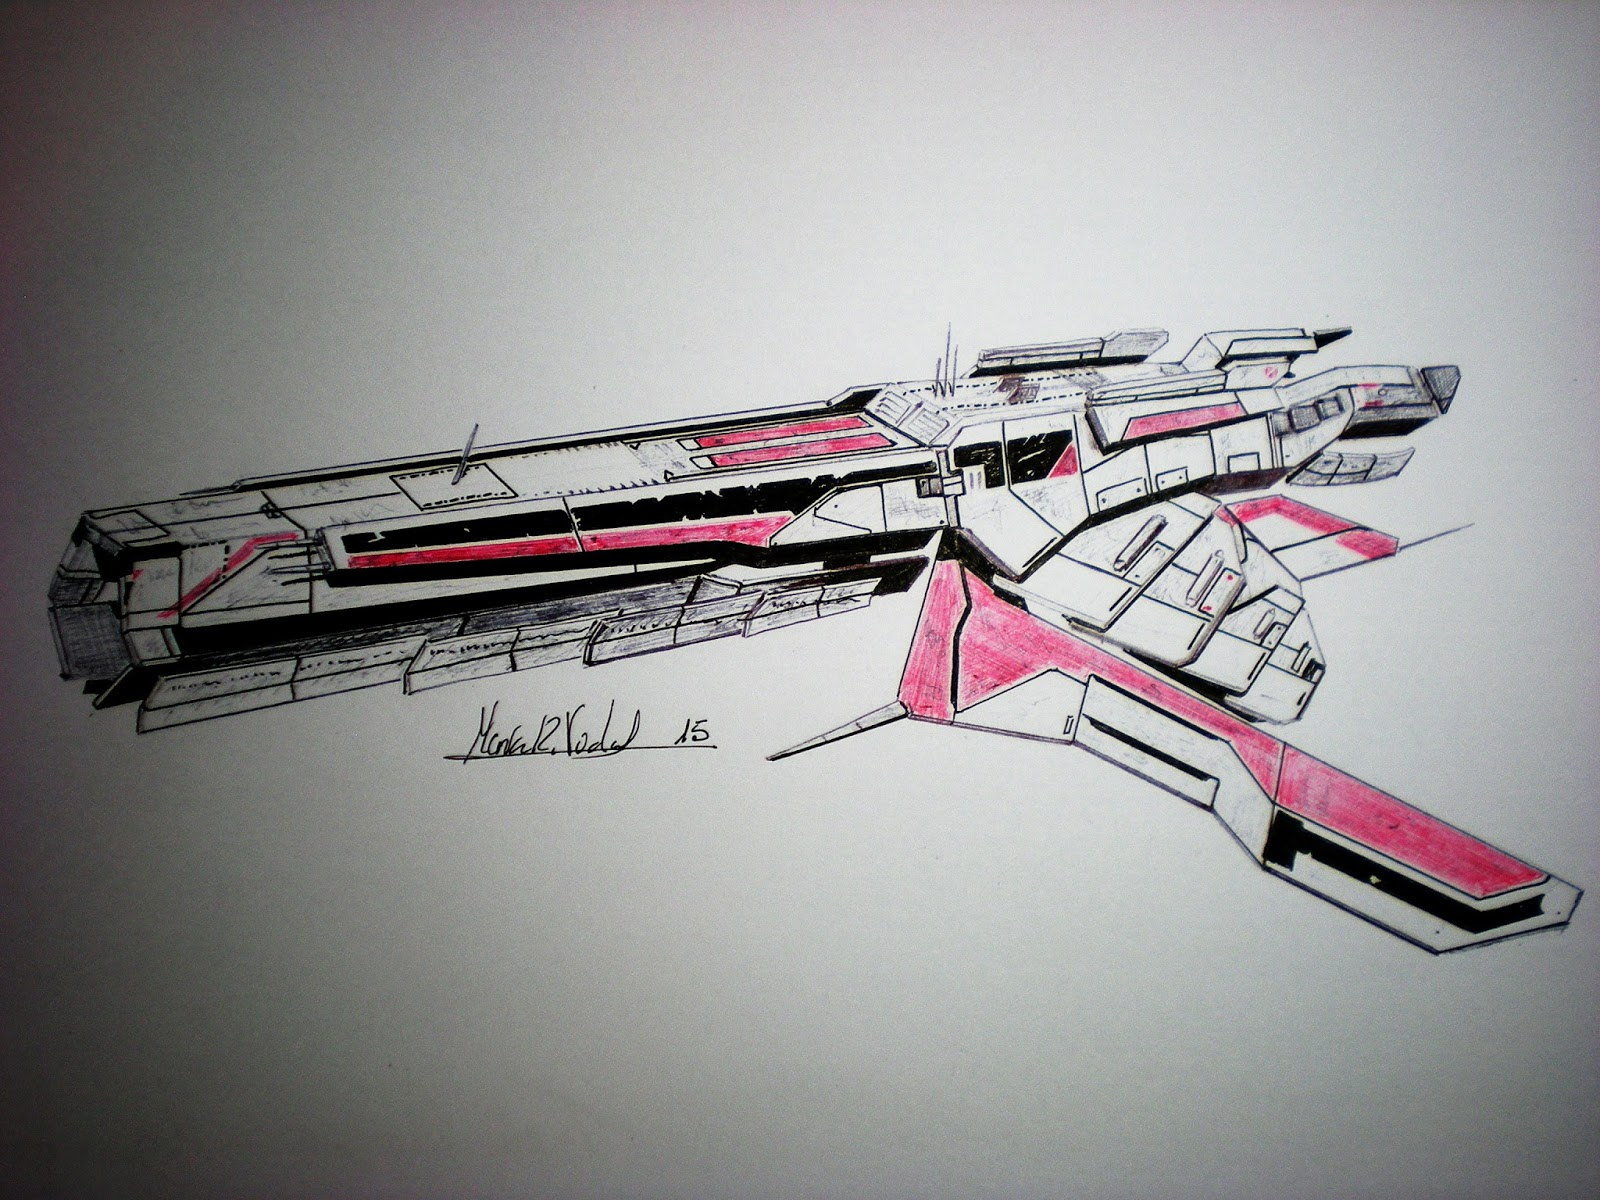 Drawings And Sketches While Studying Turian Cruiser Mass Effect